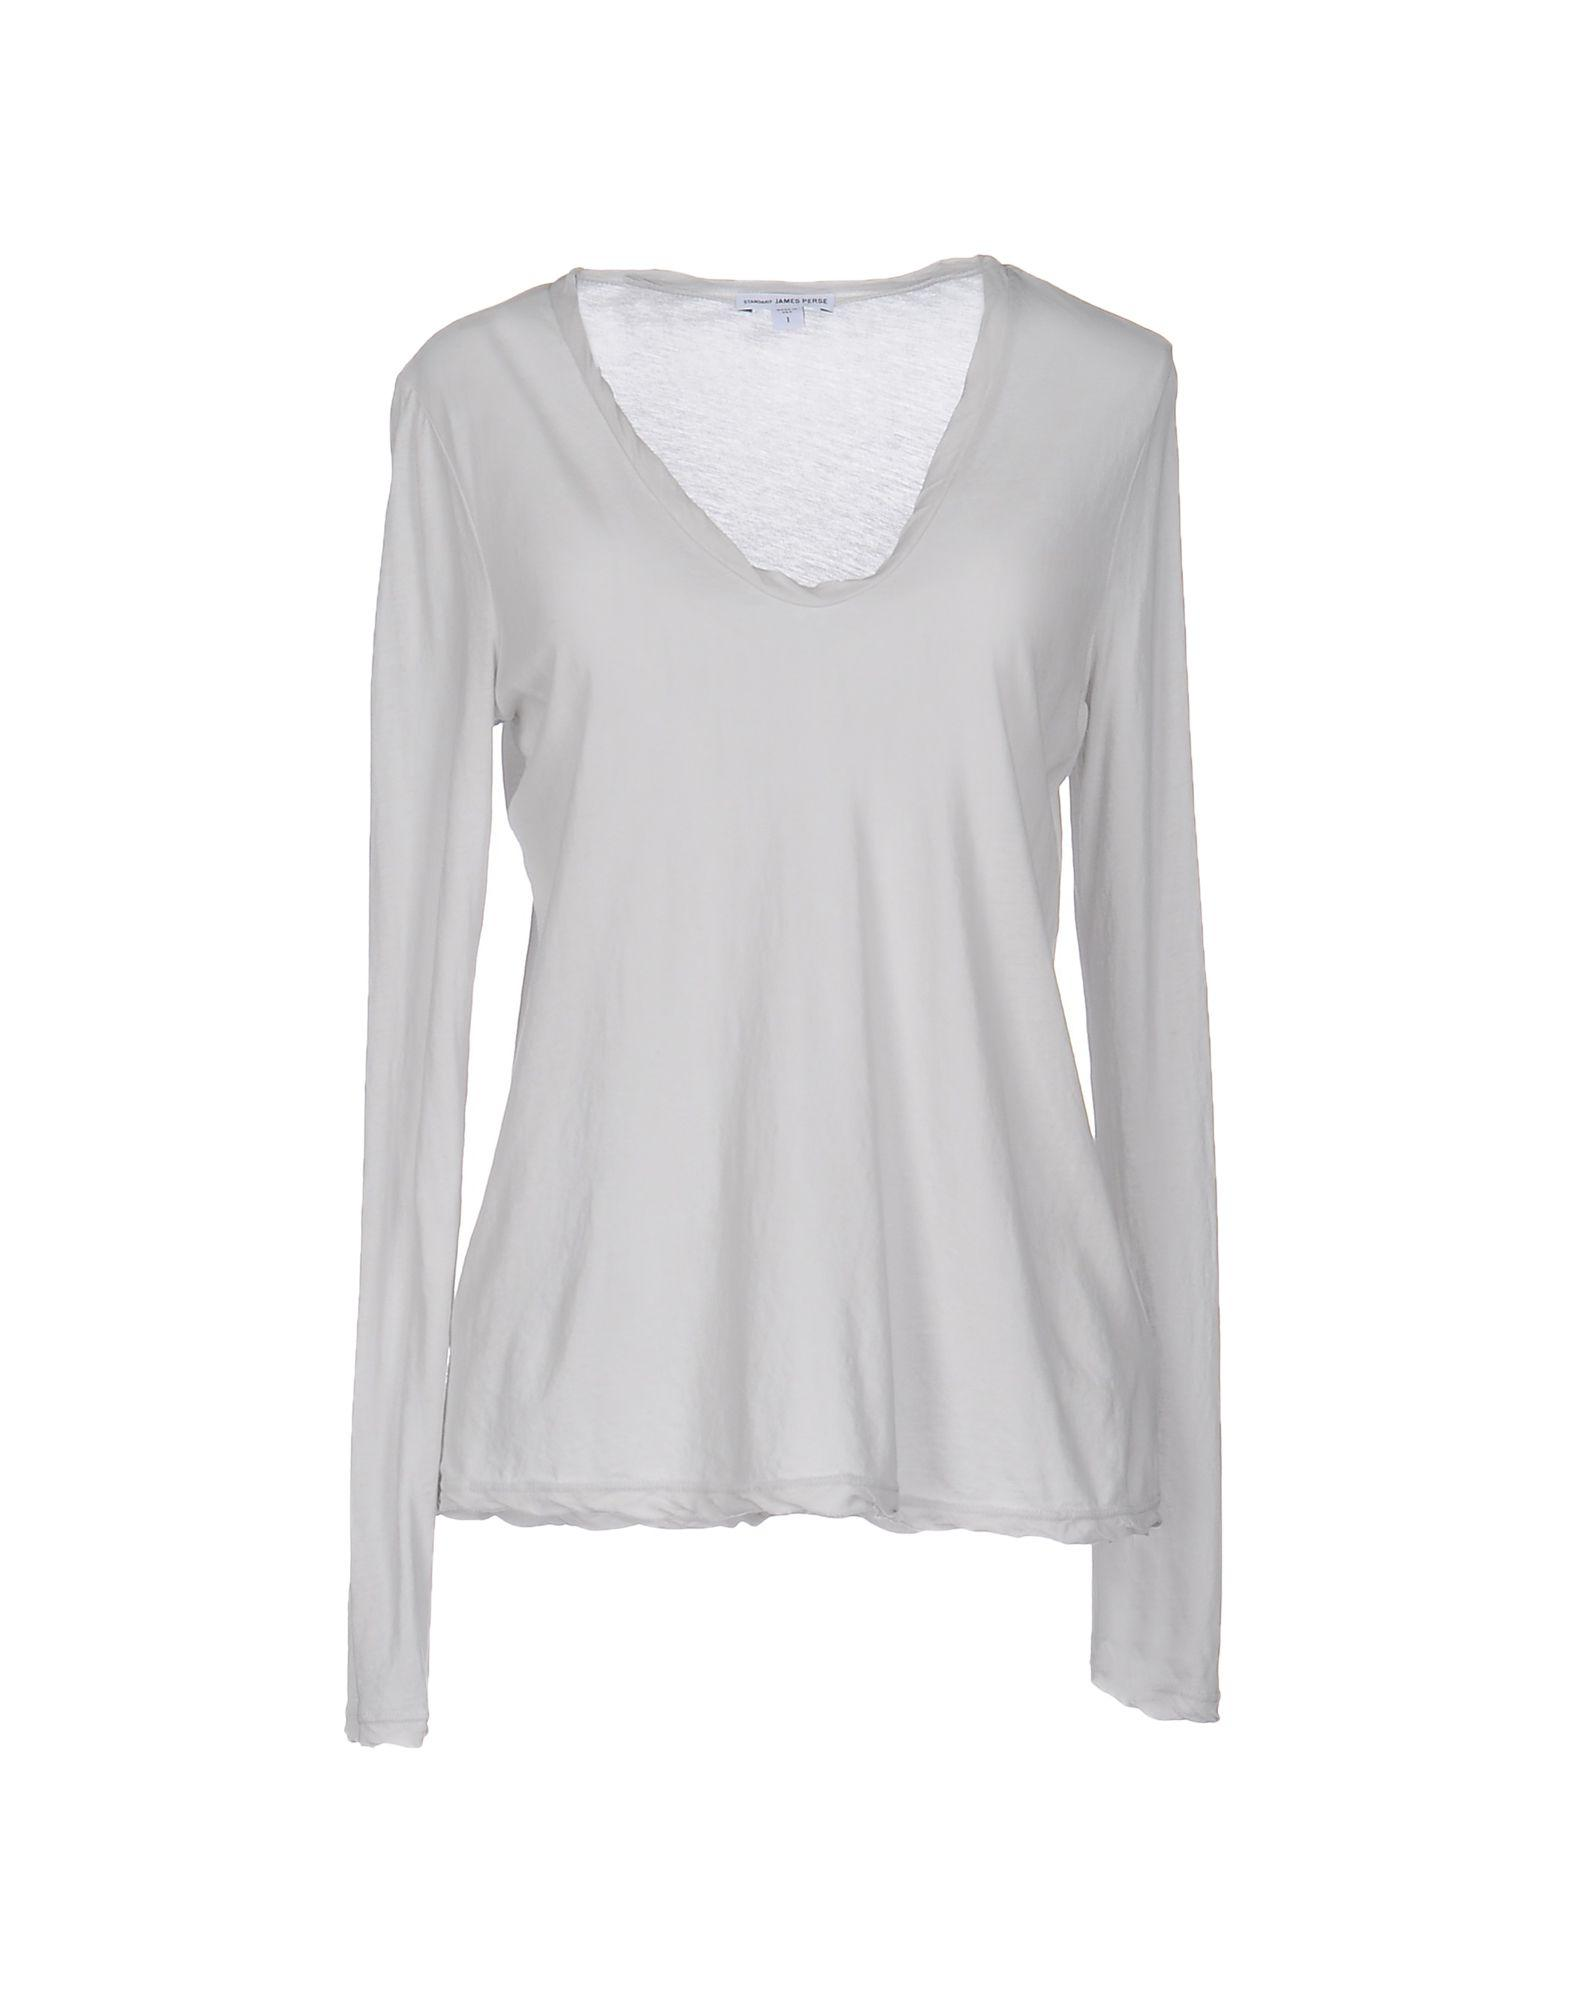 James perse t shirt in gray lyst for James perse t shirts sale